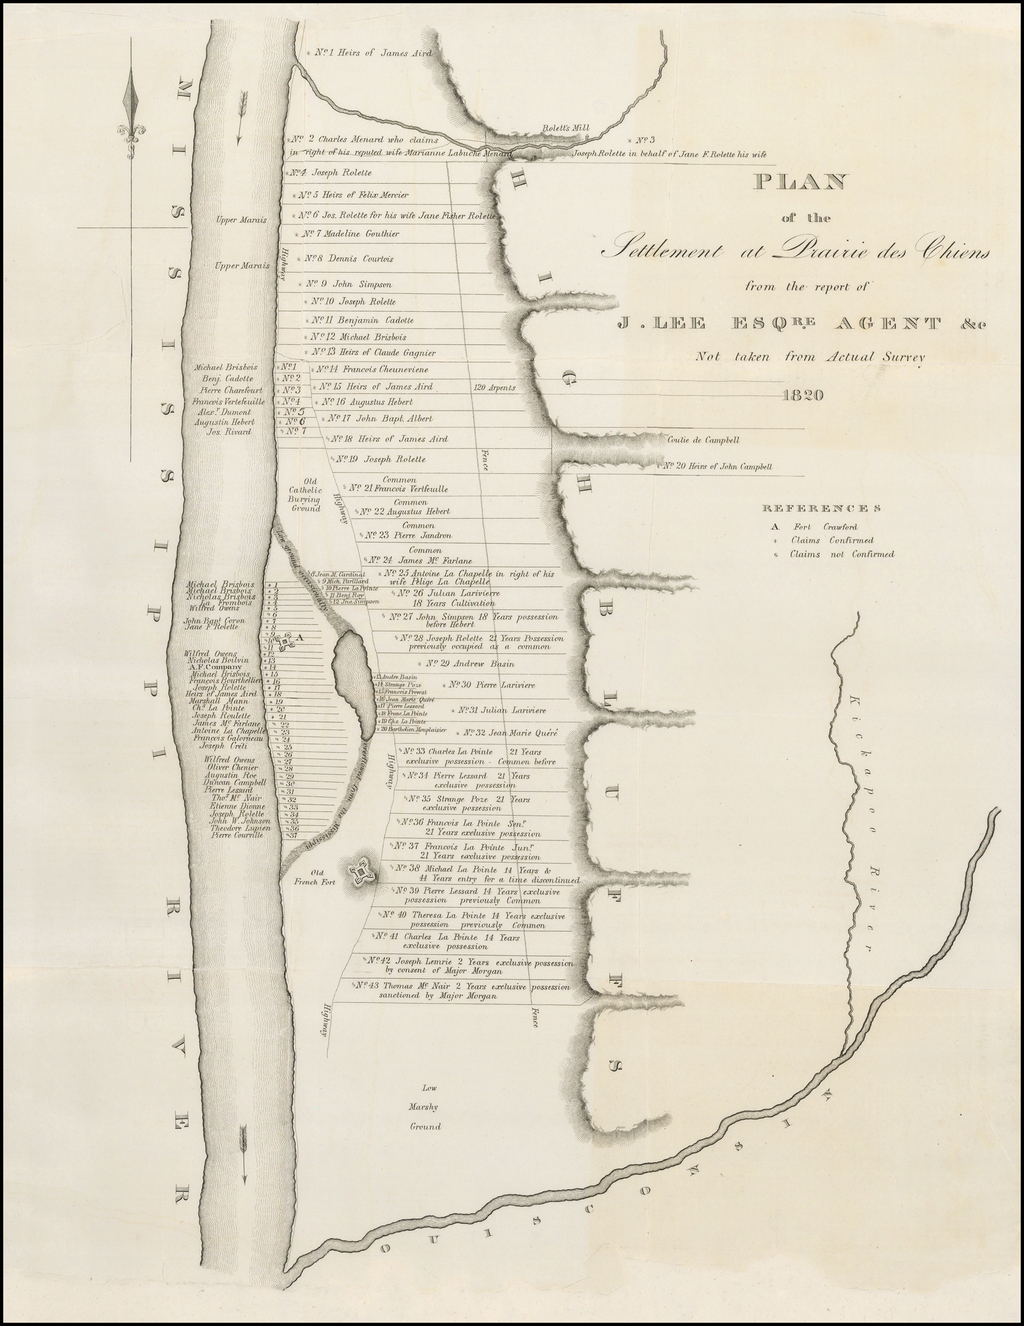 Plan of the Settlement at Prairie des Chiens from the Report of J. Lee Esqre. Agent &c. Not taken from Actual Survey 1820 By Bowen & Co.